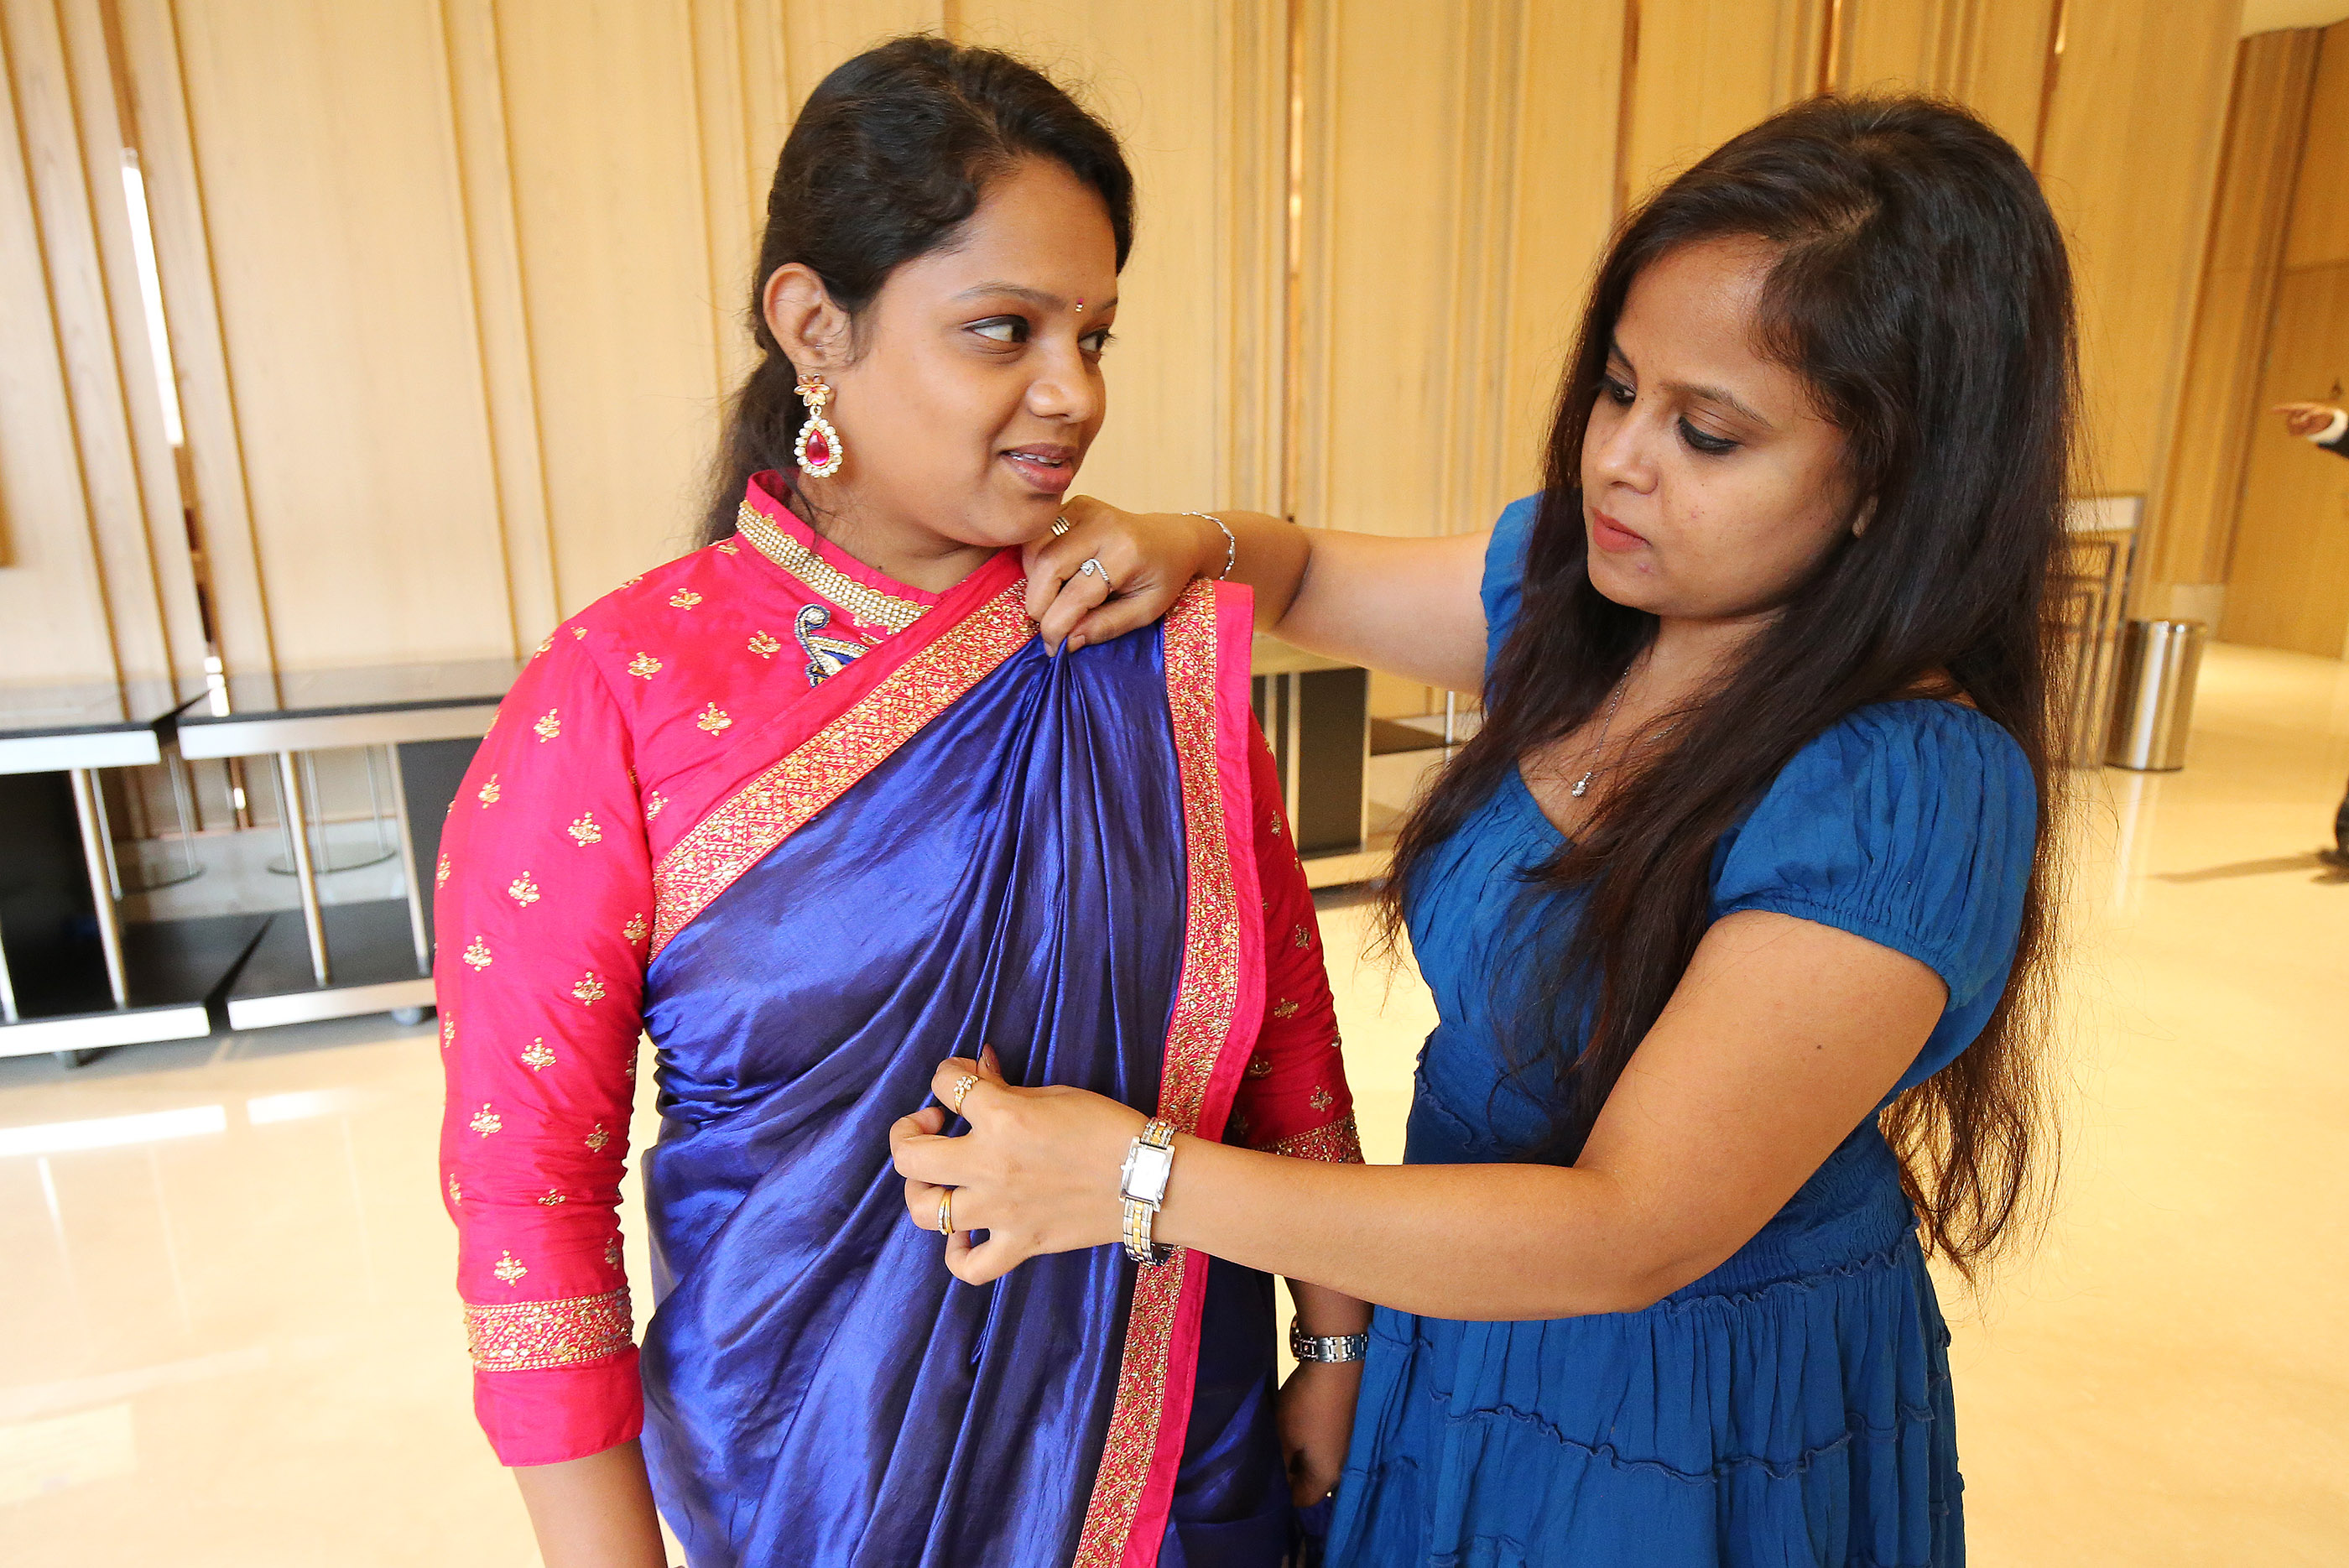 Anitha Louis, right, helps Asha Kiran prior to a devotional with President Russell M. Nelson in Bengaluru, India, on Thursday, April 19, 2018.